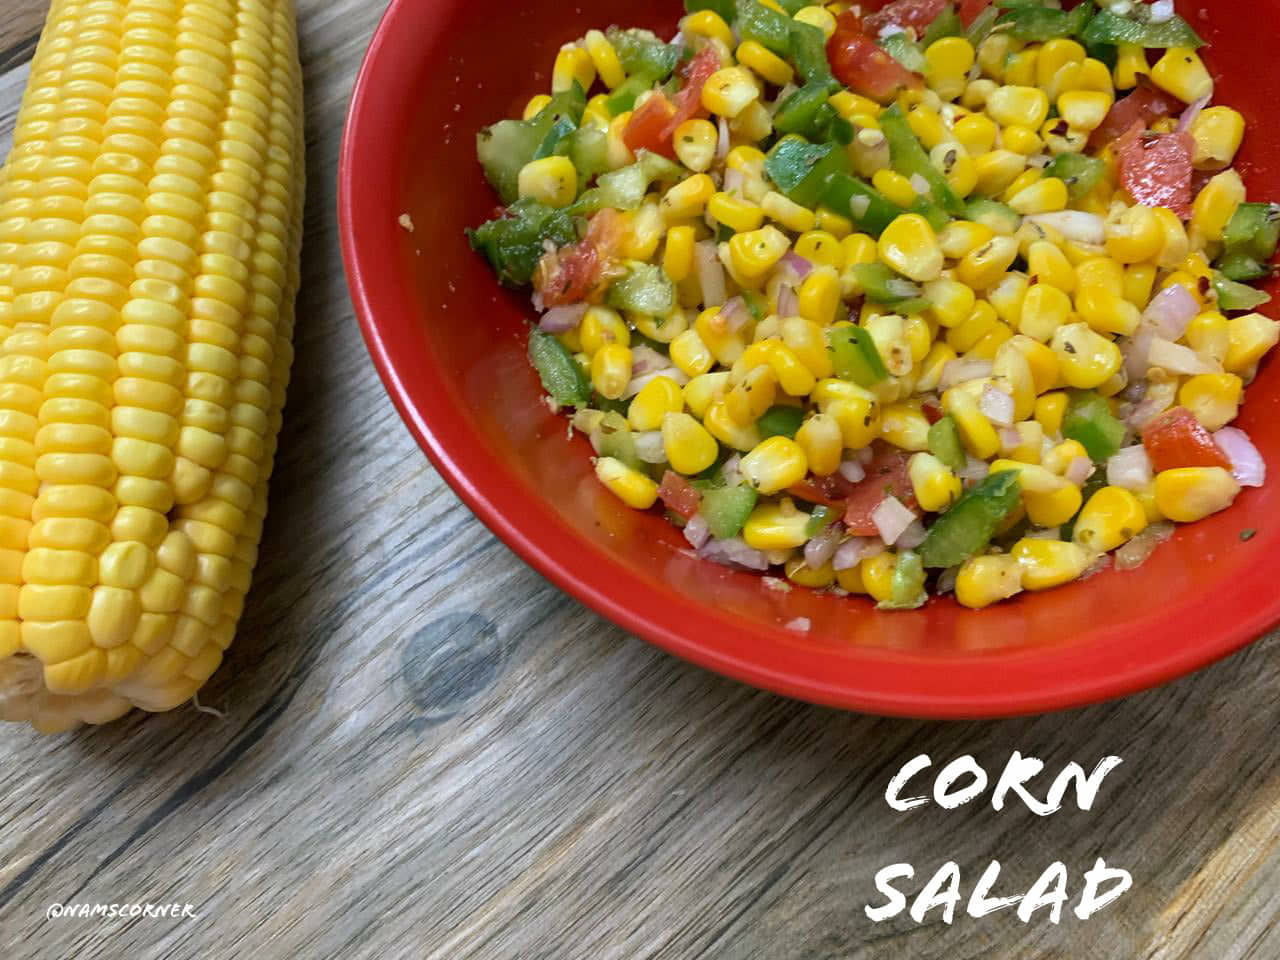 Corn Salad Recipe | Corn Salad with Italian Dressing | Sweet Corn Salad